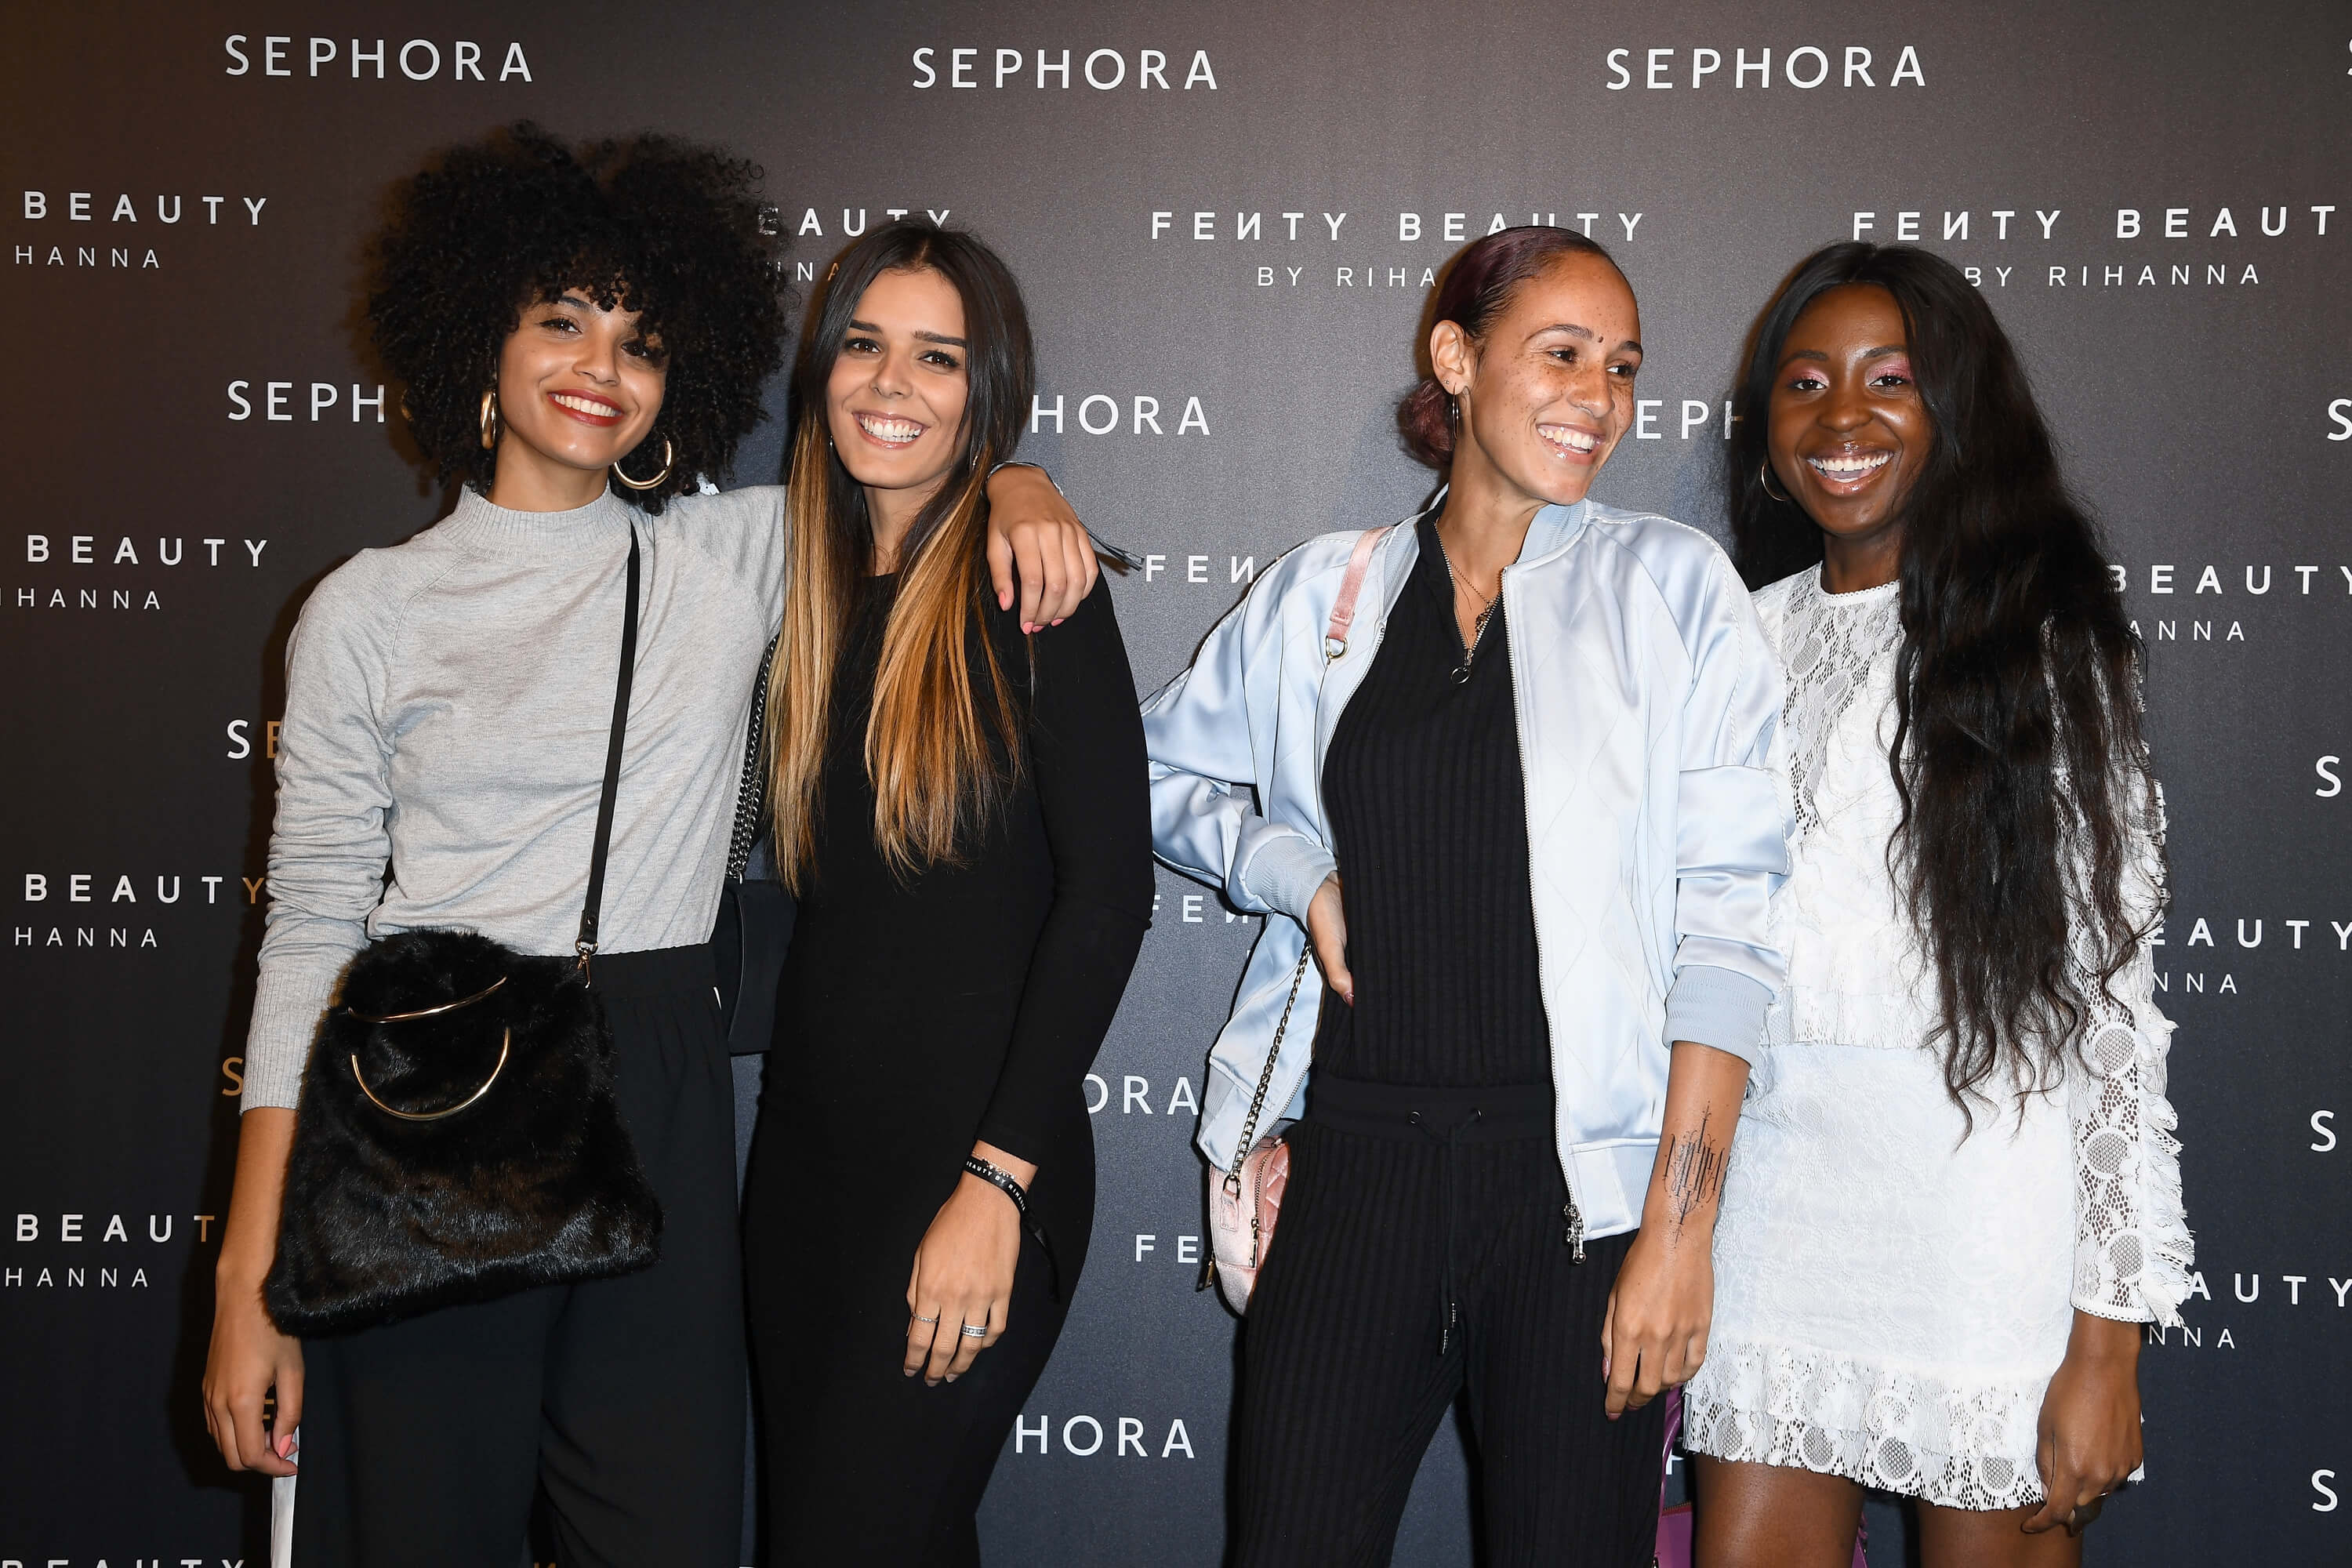 PARIS, FRANCE - SEPTEMBER 21:  (L-R)  Influencers Syanafromparis, Justinevrgr,  Herapradel and Signecatseyes  attend the Fenty Beauty By Rihanna Paris Launch Party hosted by Sephora at Jardin des Tuileries on September 21, 2017 in Paris, France.  (Photo by Pascal Le Segretain/Getty Images for Fenty Beauty) *** Local Caption *** Syanafromparis; Justinevrgr; Herapradel; Signecatseyes